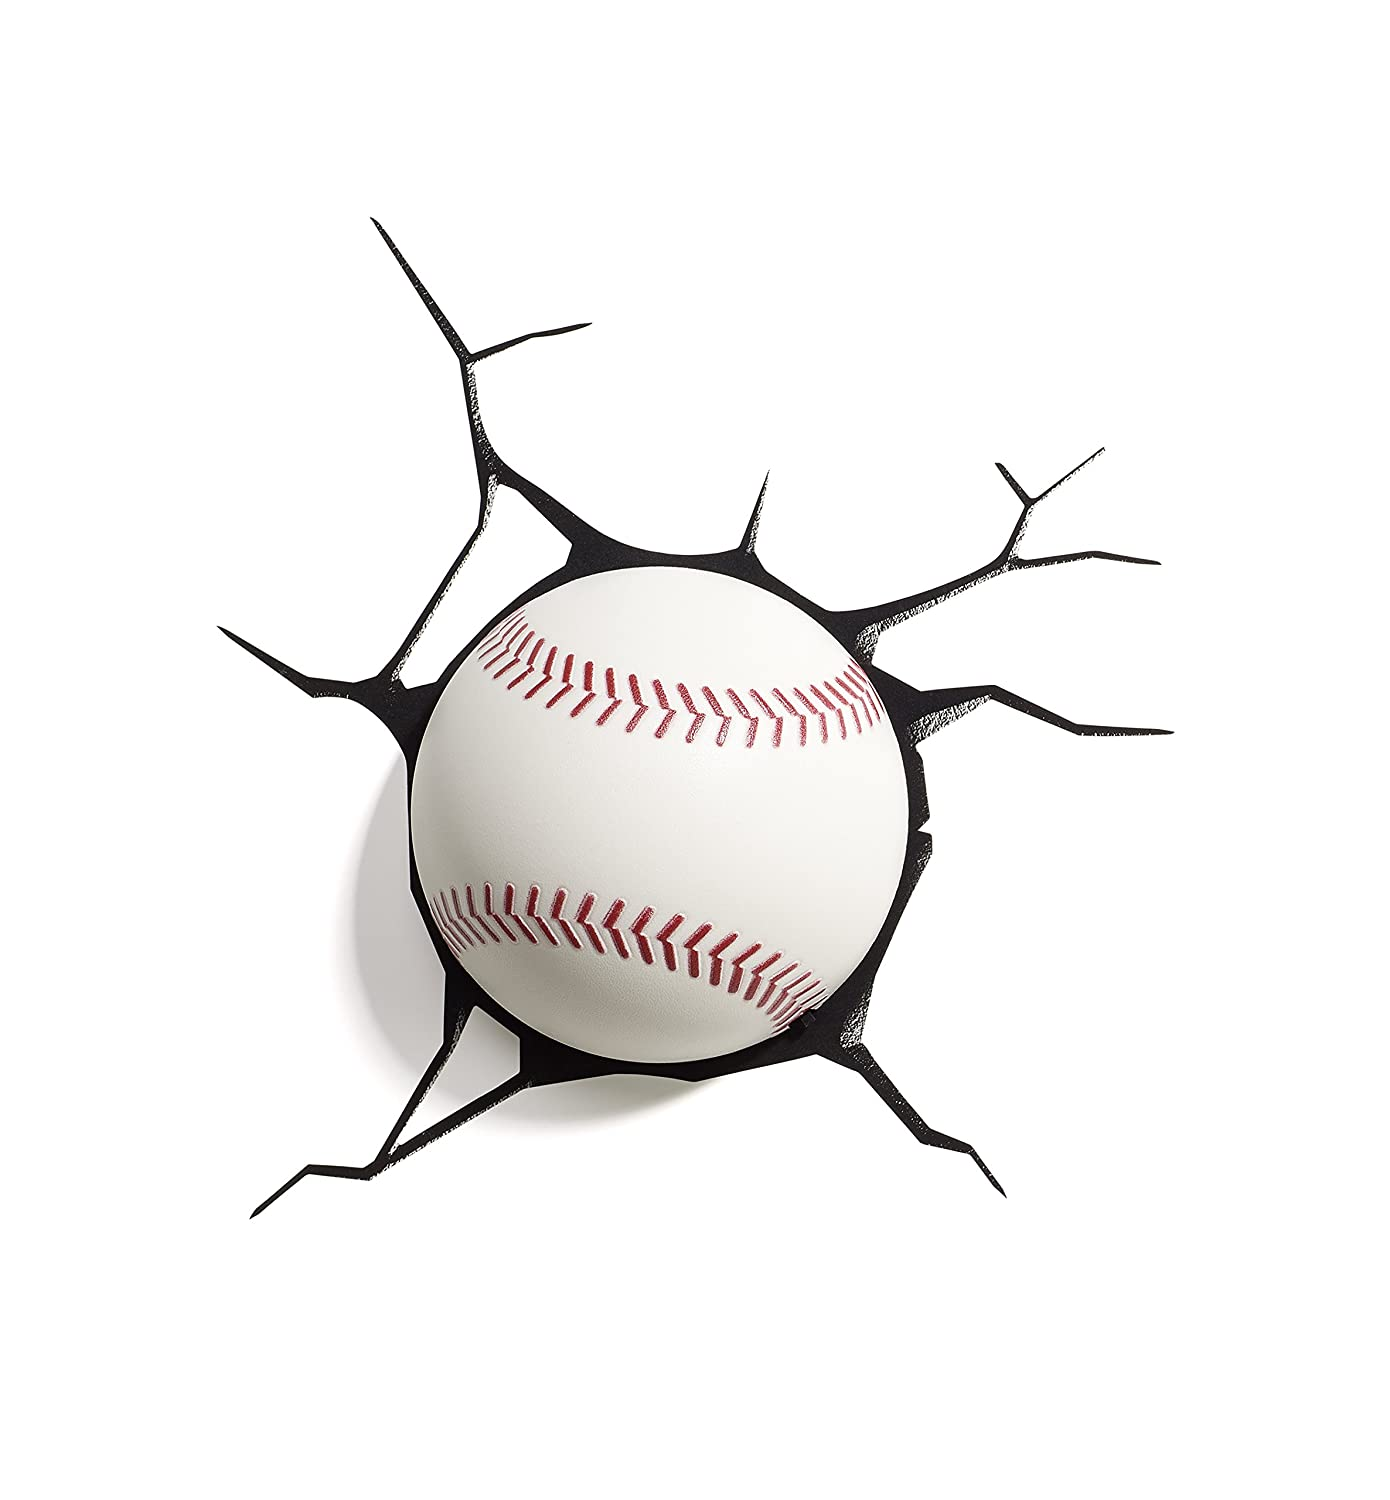 3D Light FX Sports Mini 3D Deco Wall LED Night Light with Crack Wall Sticker, Baseball Panoware